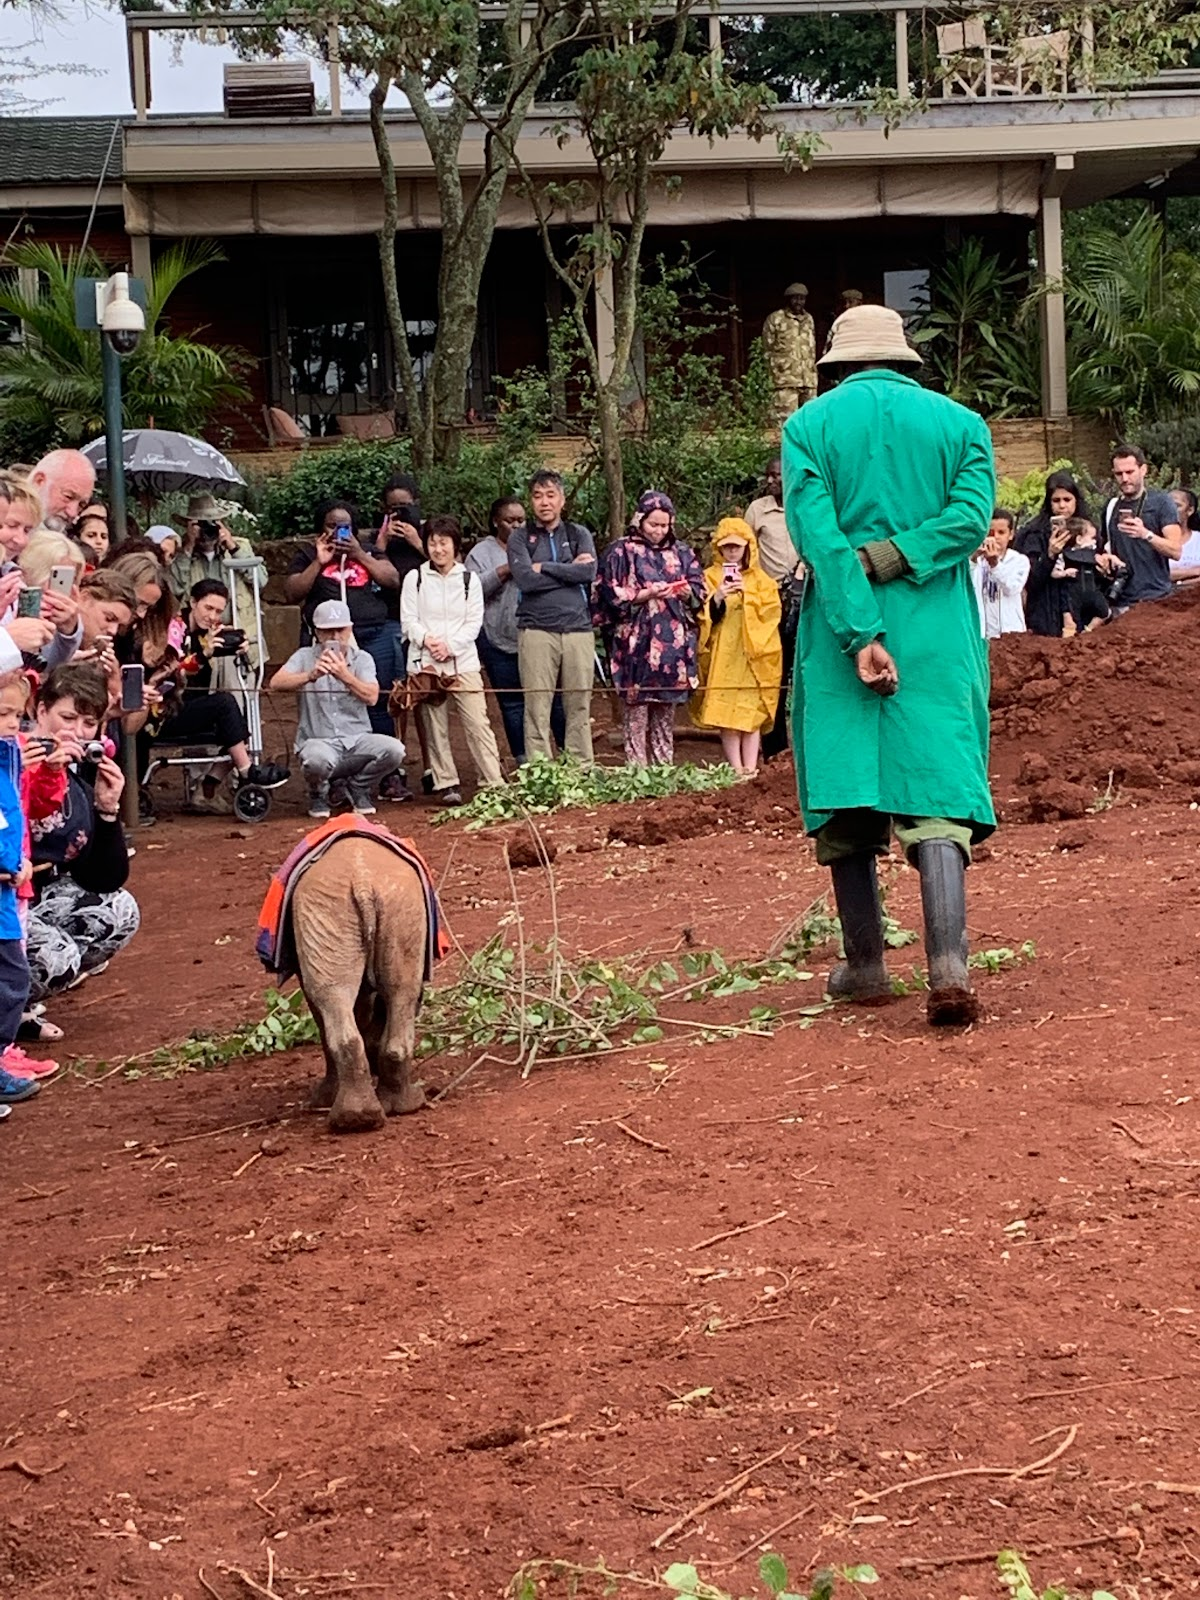 DSWT - David Sheldrick Wildlife Trust. Maarifa. Photo by Young Lee